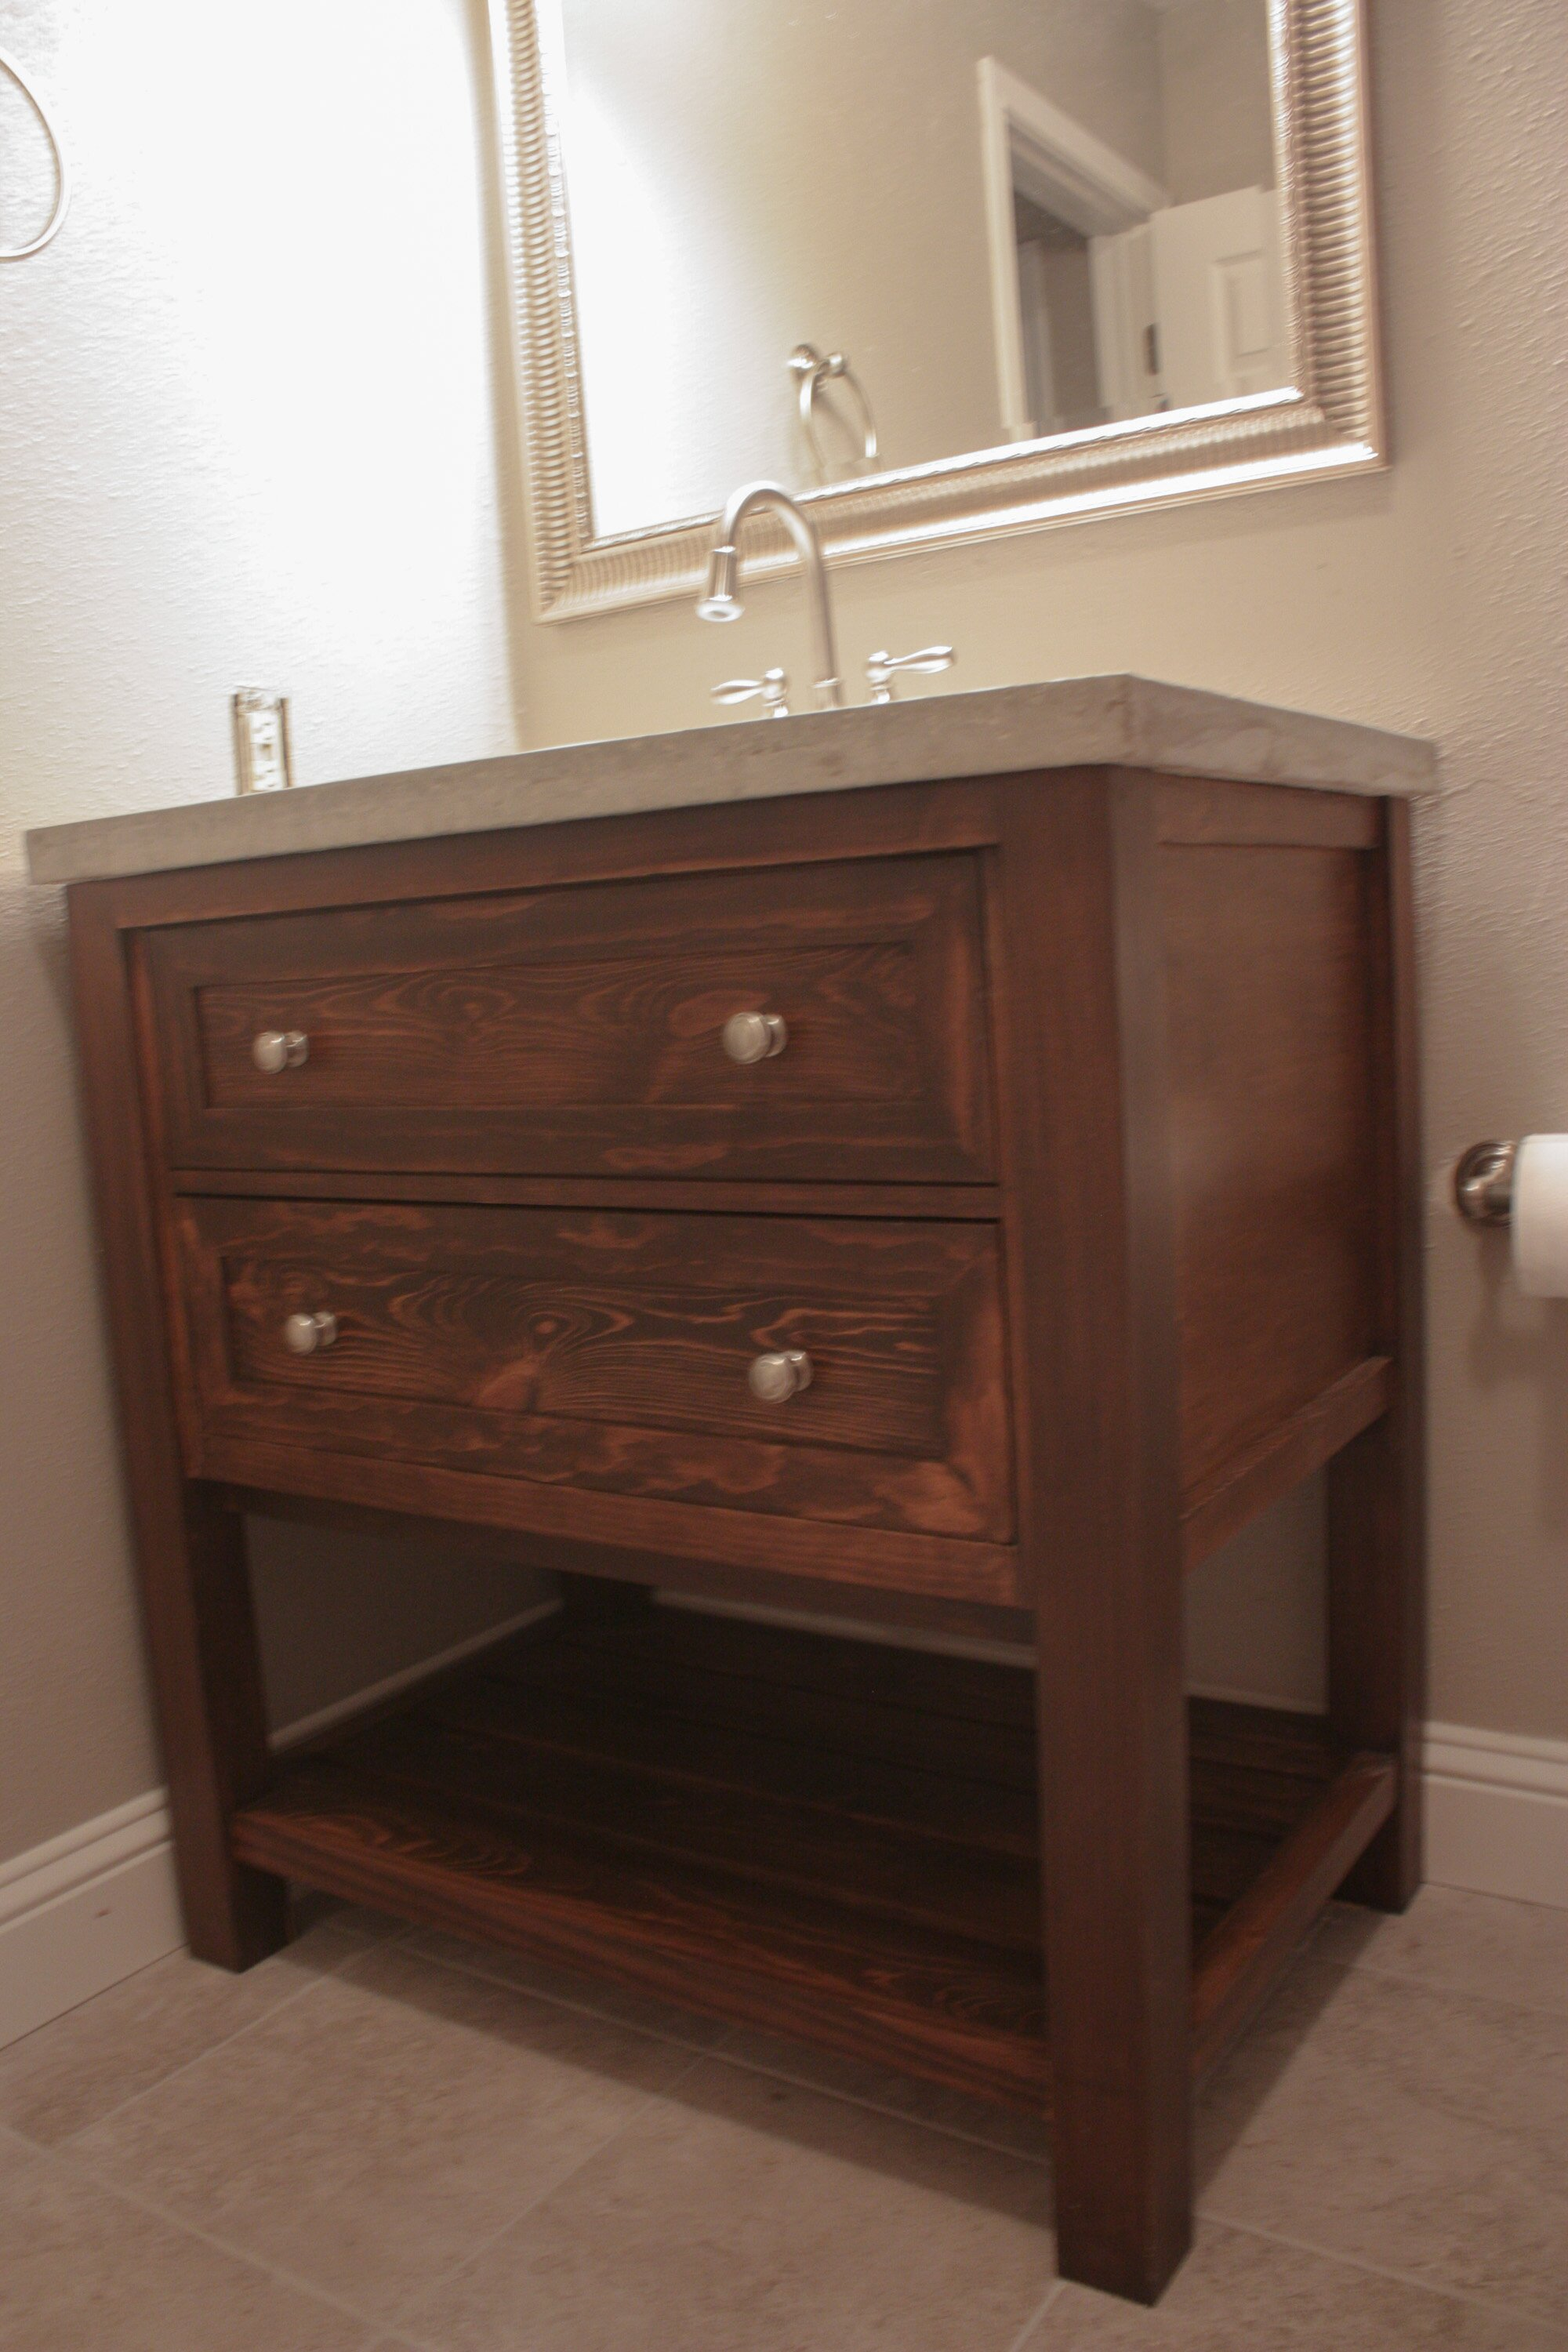 Bathroom pottery barn vanity for bathroom cabinet design for Bathroom vanity sinks sale